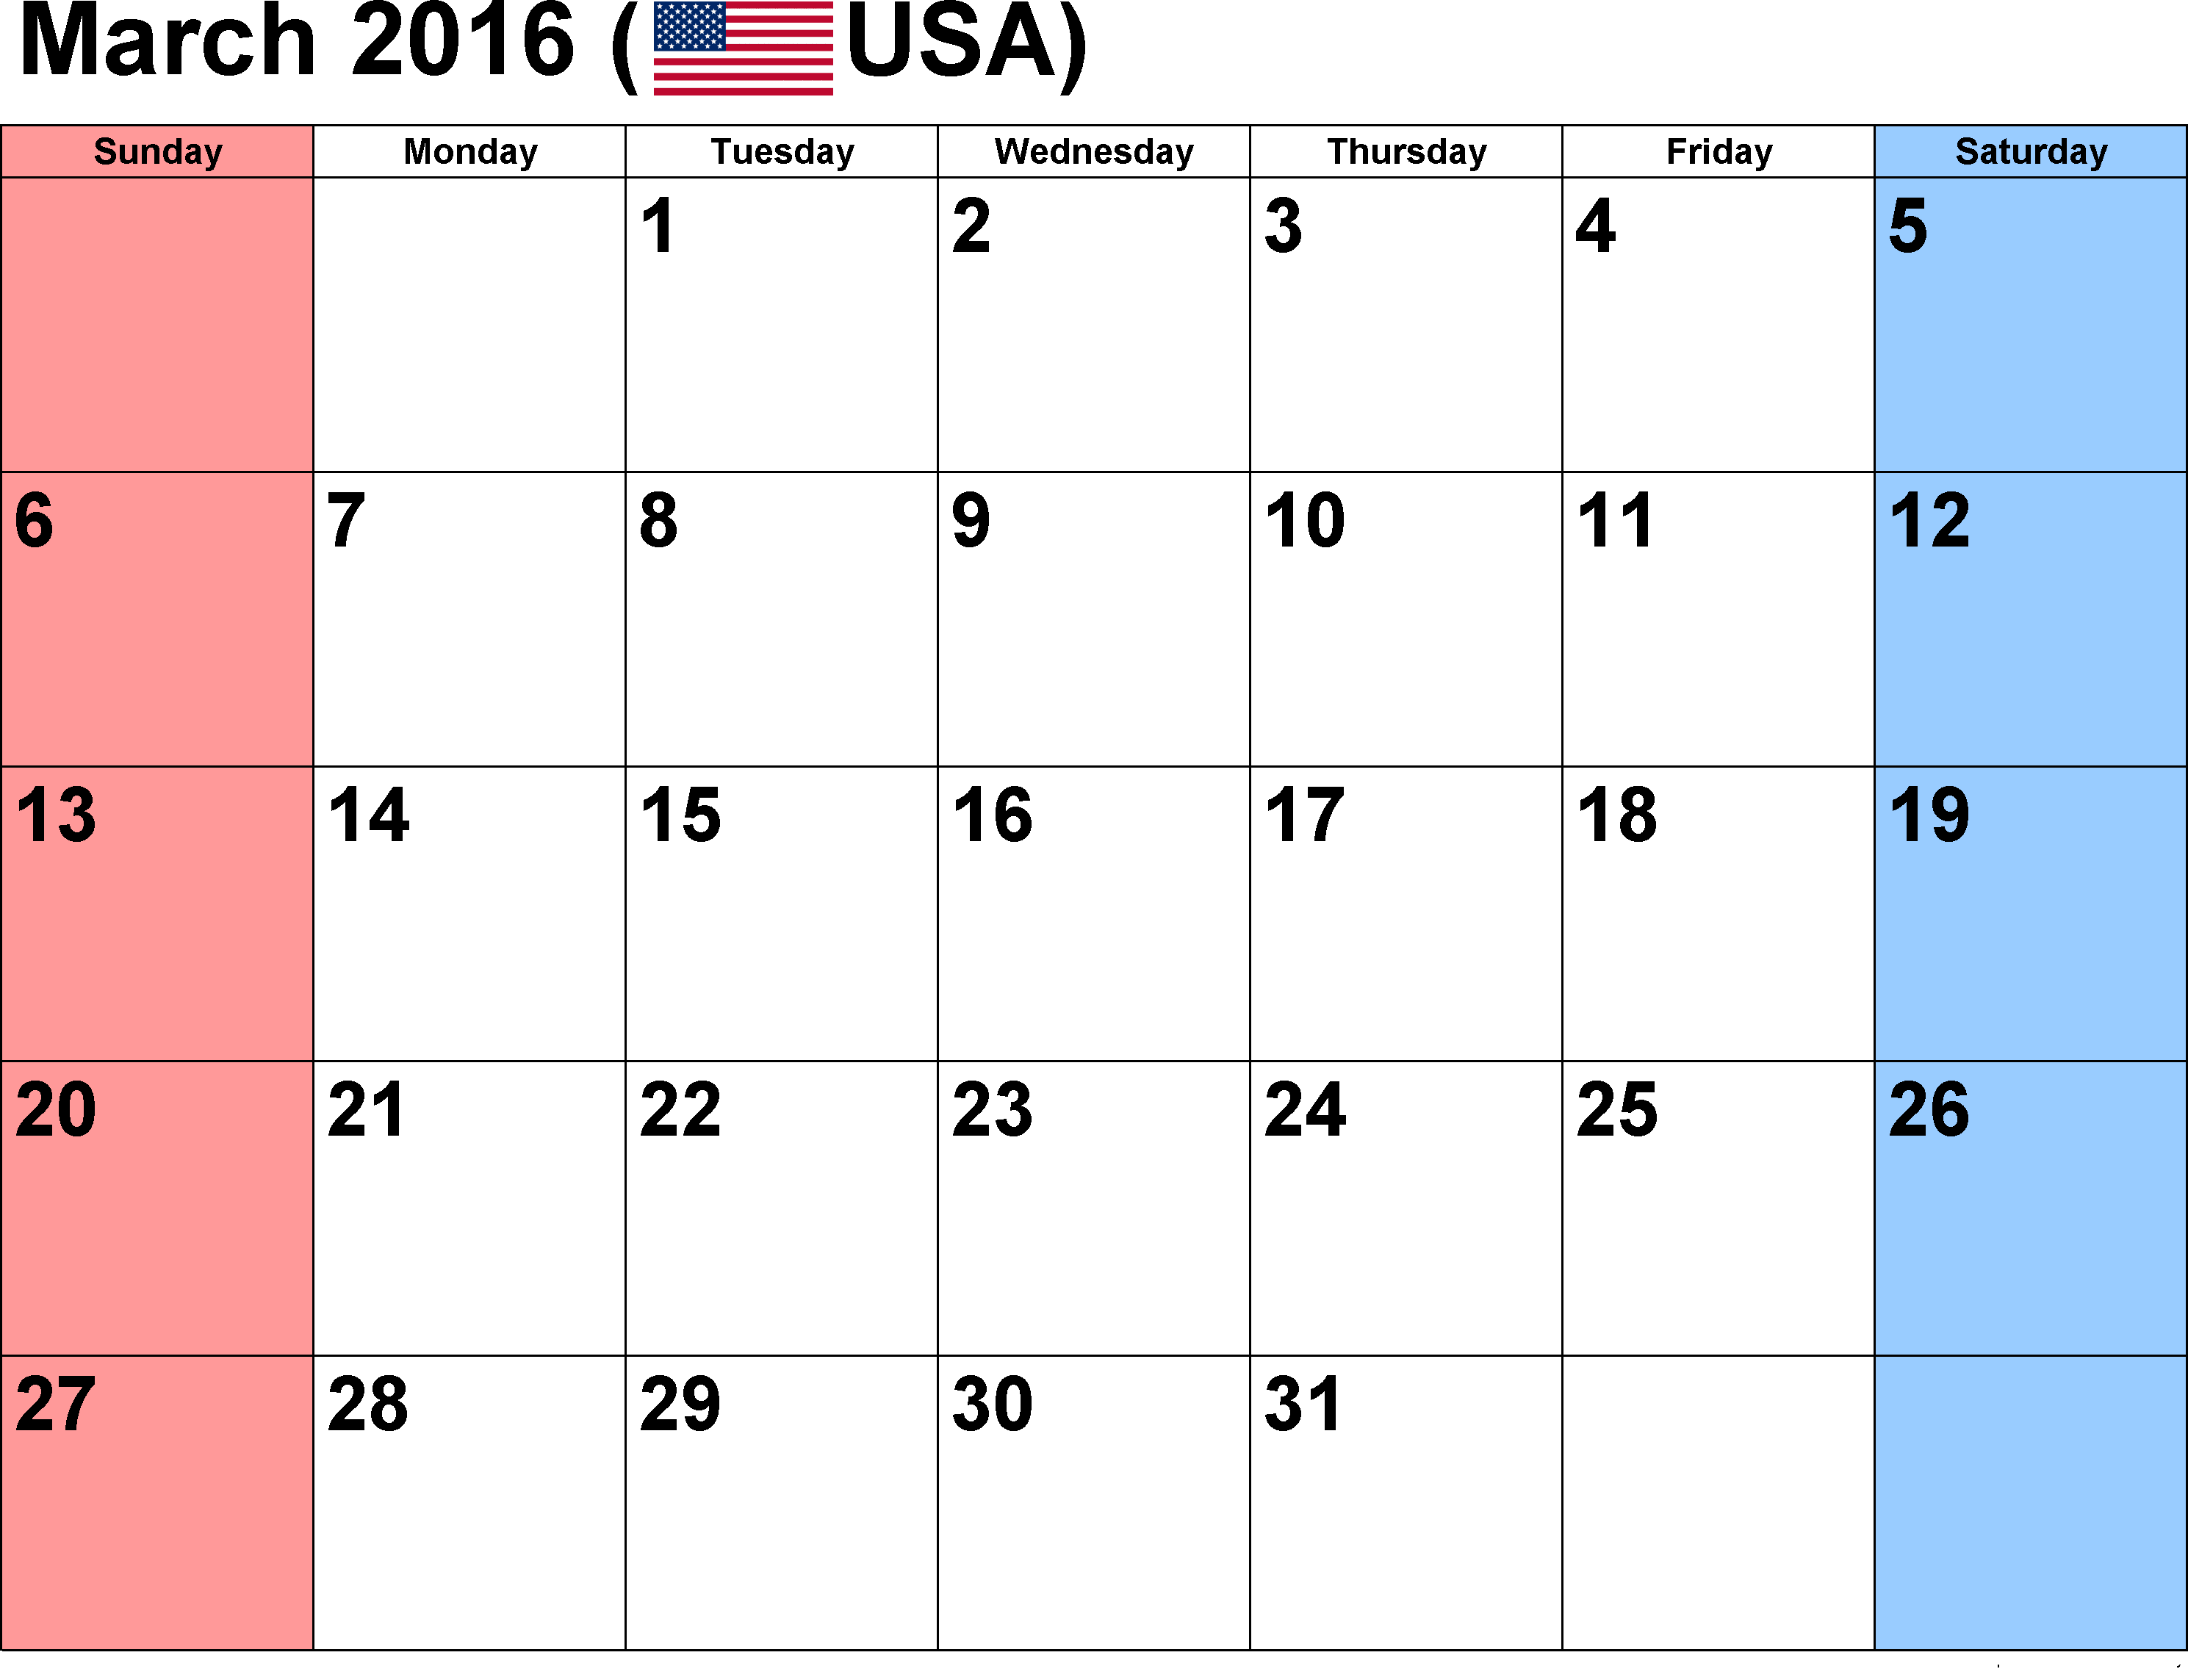 Blank Calendar With Holidays : May calendar with holidays usa uk canada